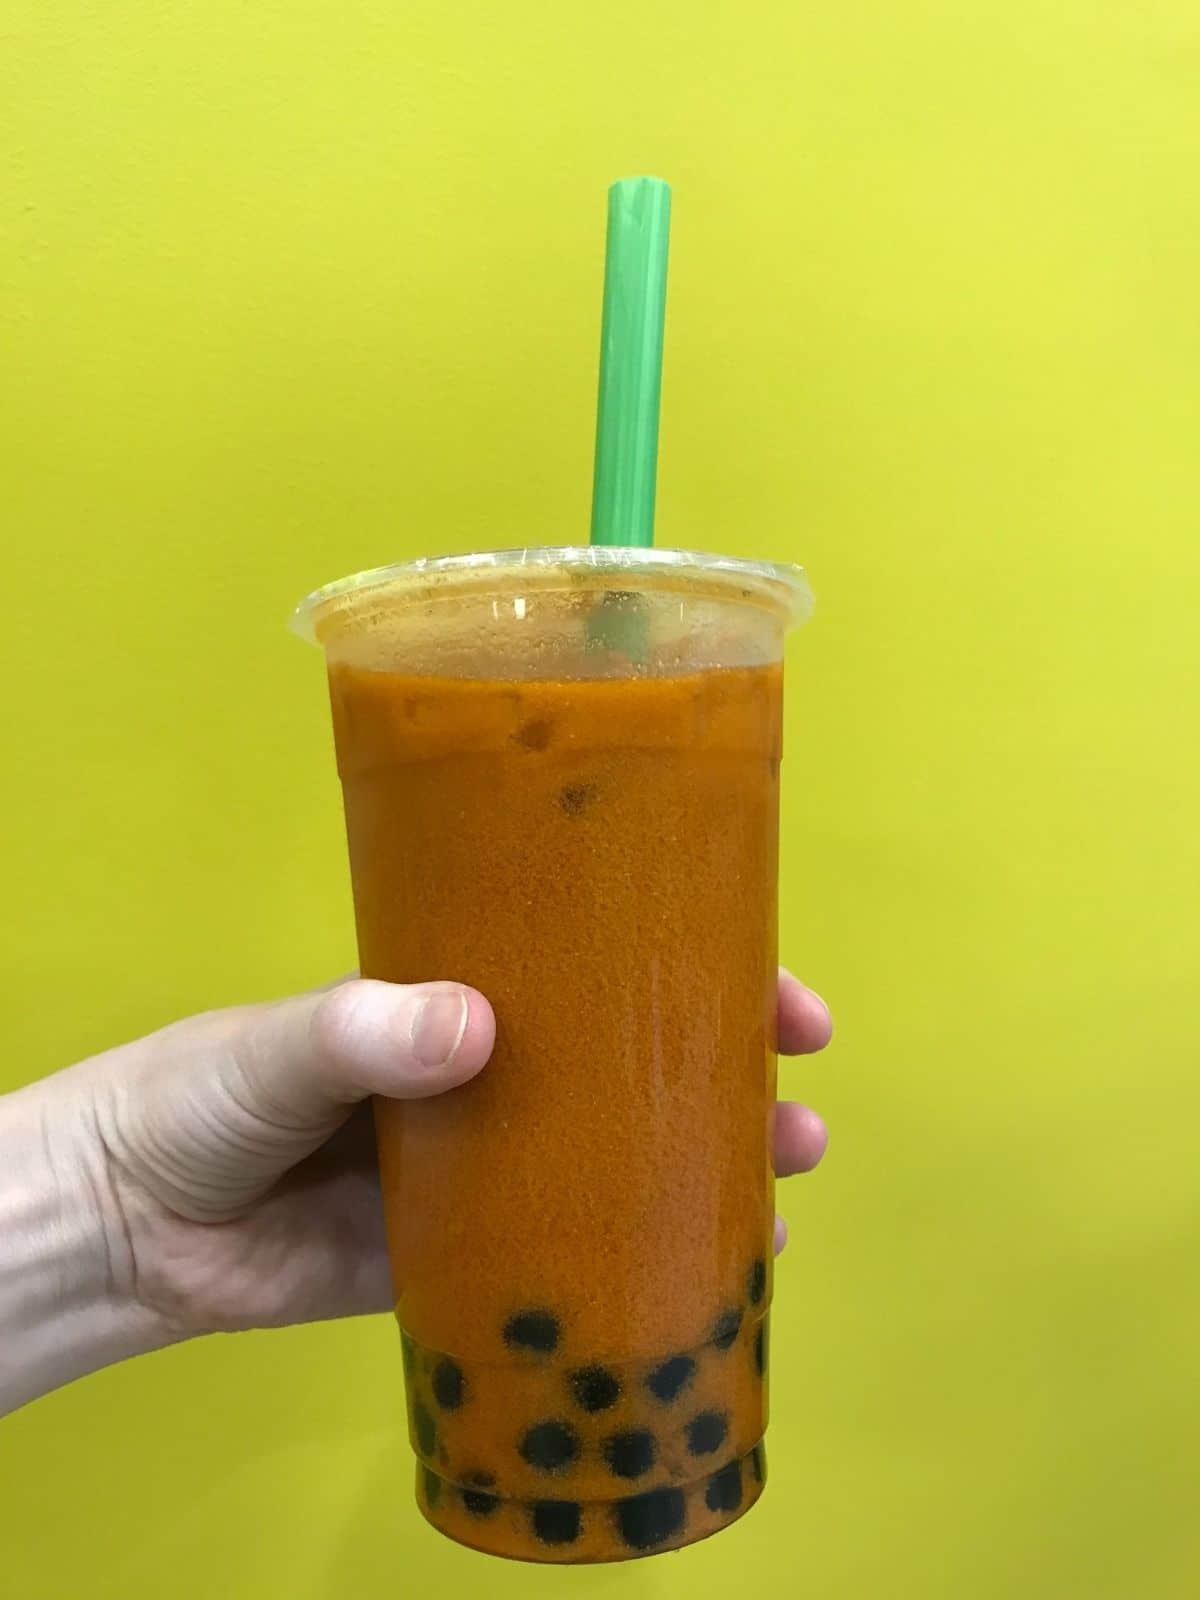 thai tea with boba being held up in a clear cup with a green straw against a yellow background